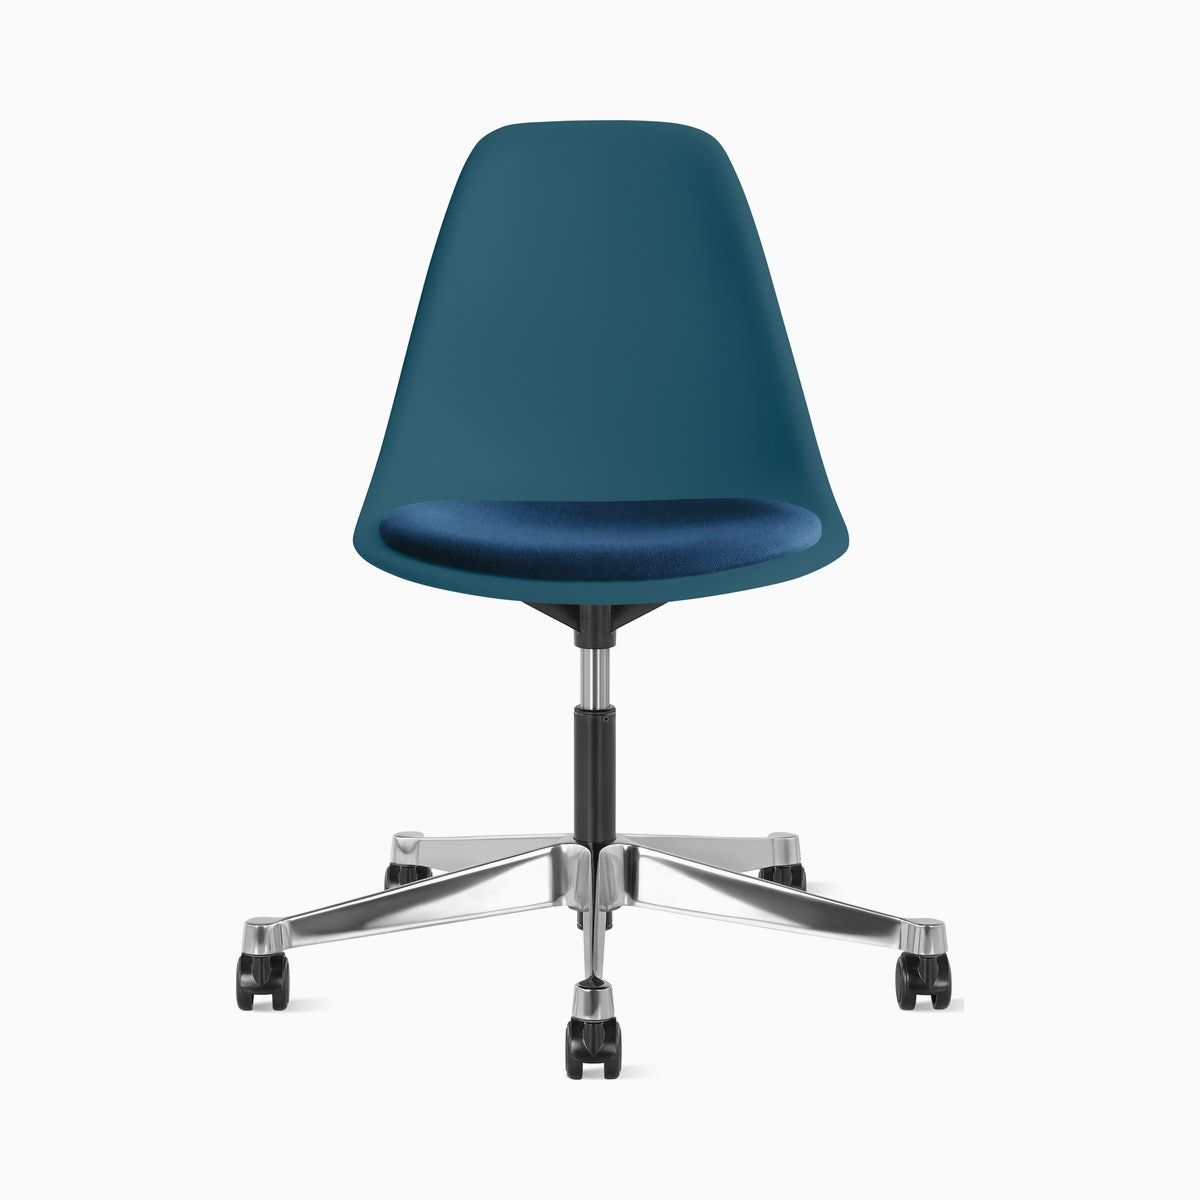 Eames Task Chair with Seatpad, Molded Plastic Side chair